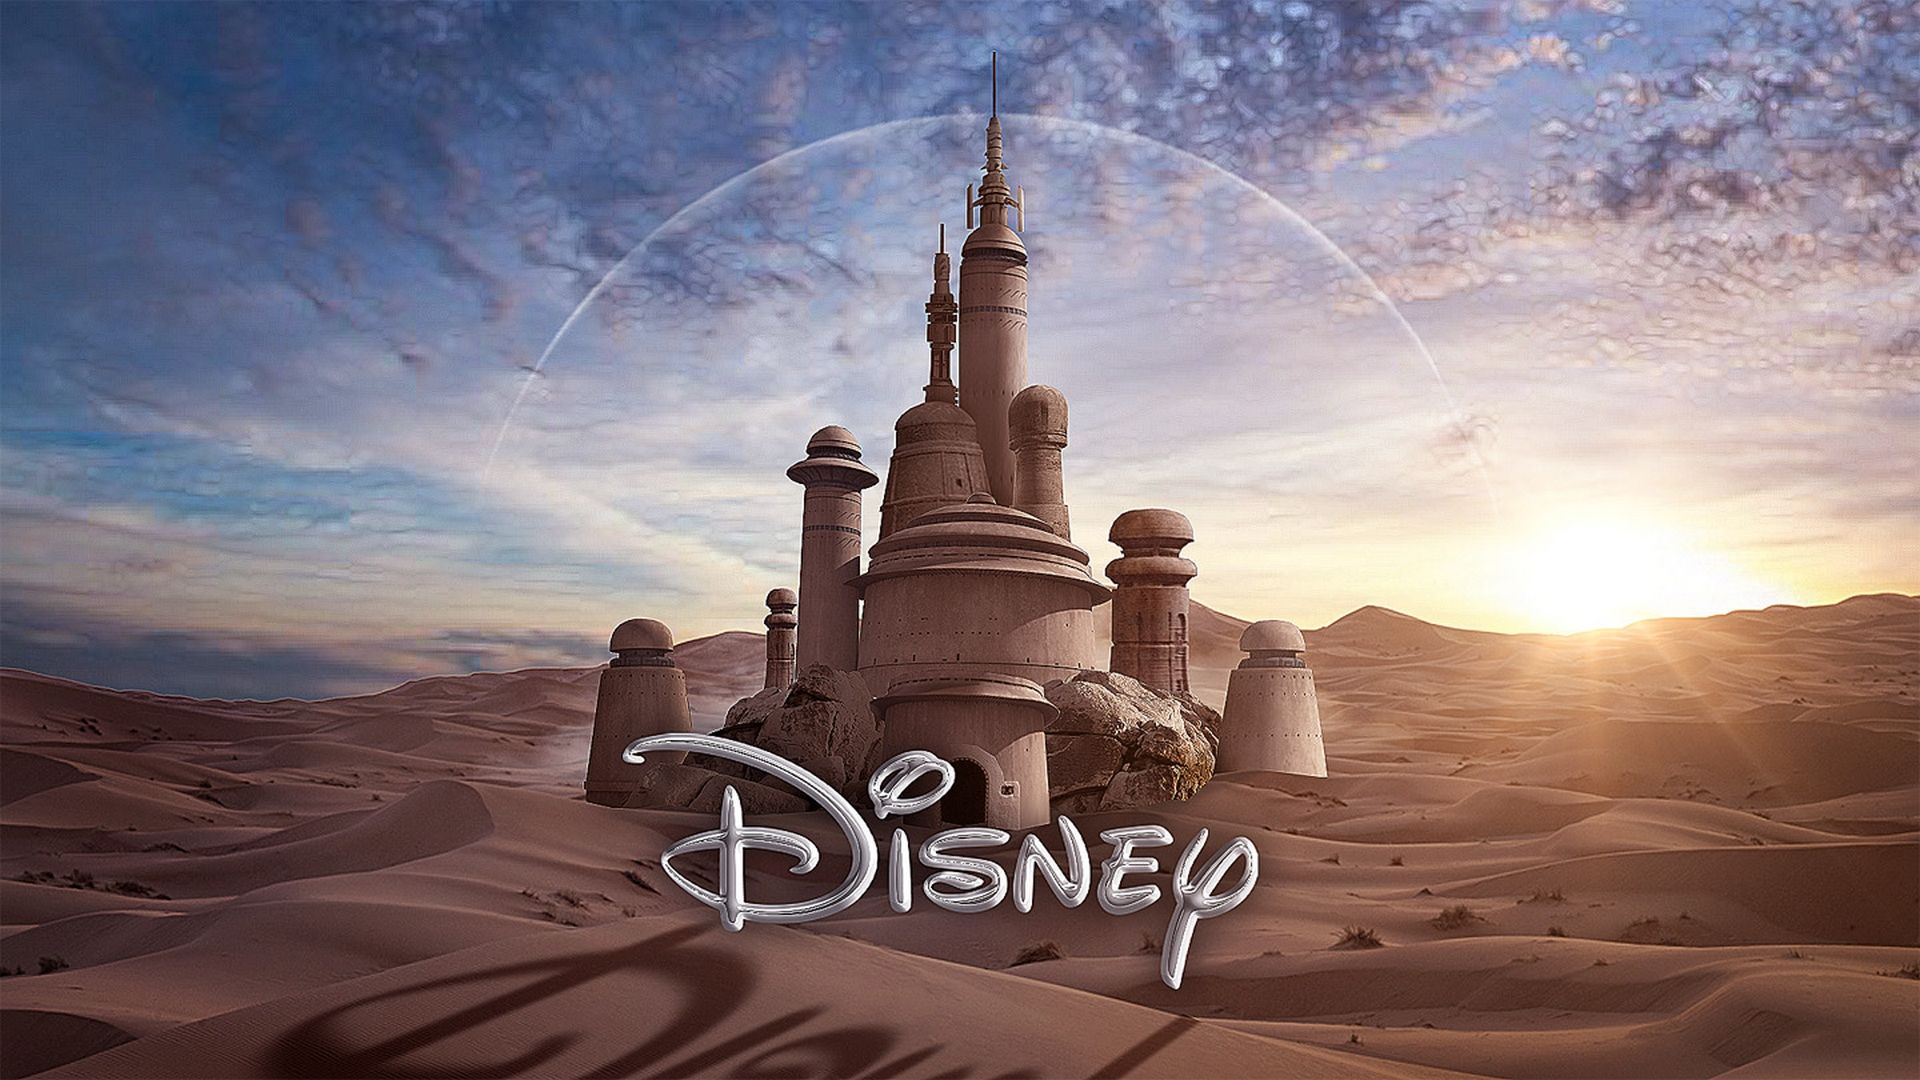 Pin By Mark On When You Wish Upon A Star Disney Star Wars Star Wars Awesome Star Wars 7